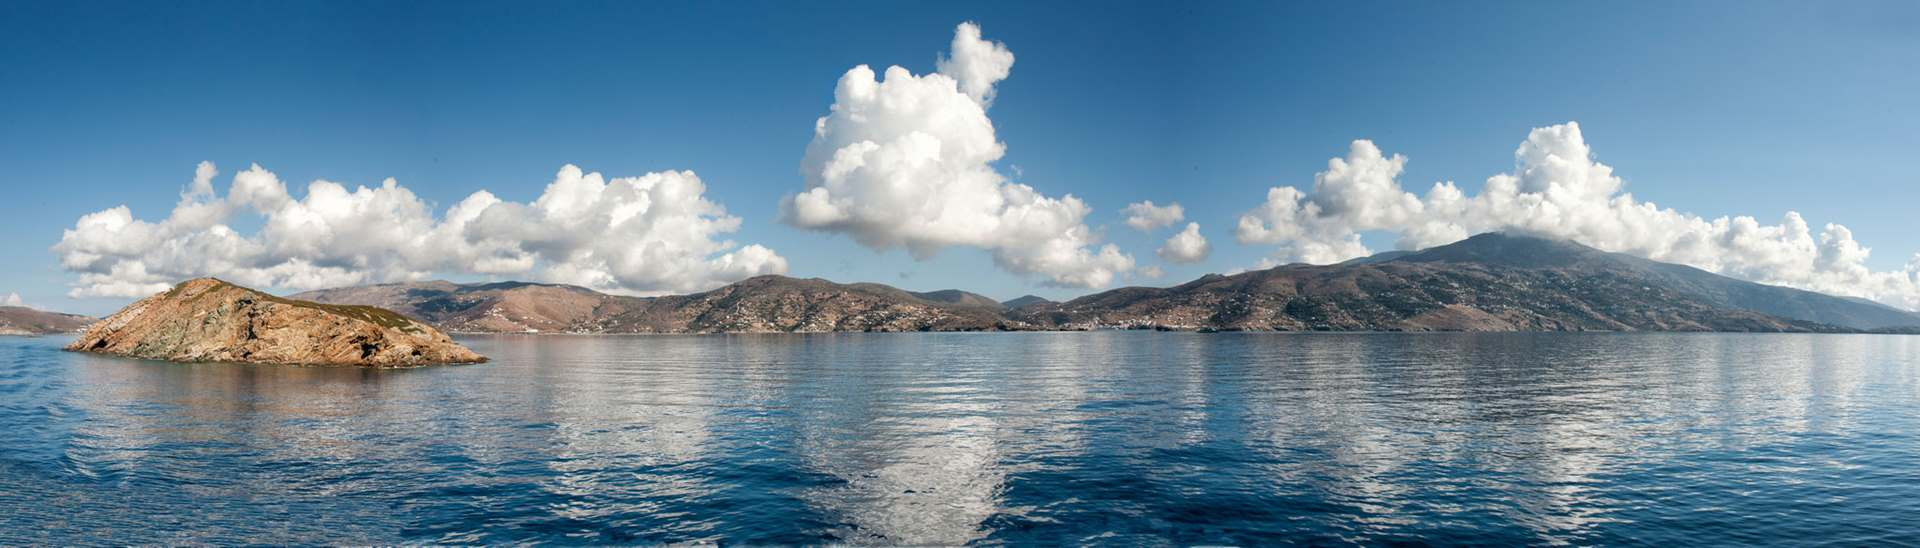 View from our on board briefing on our way to Tinos